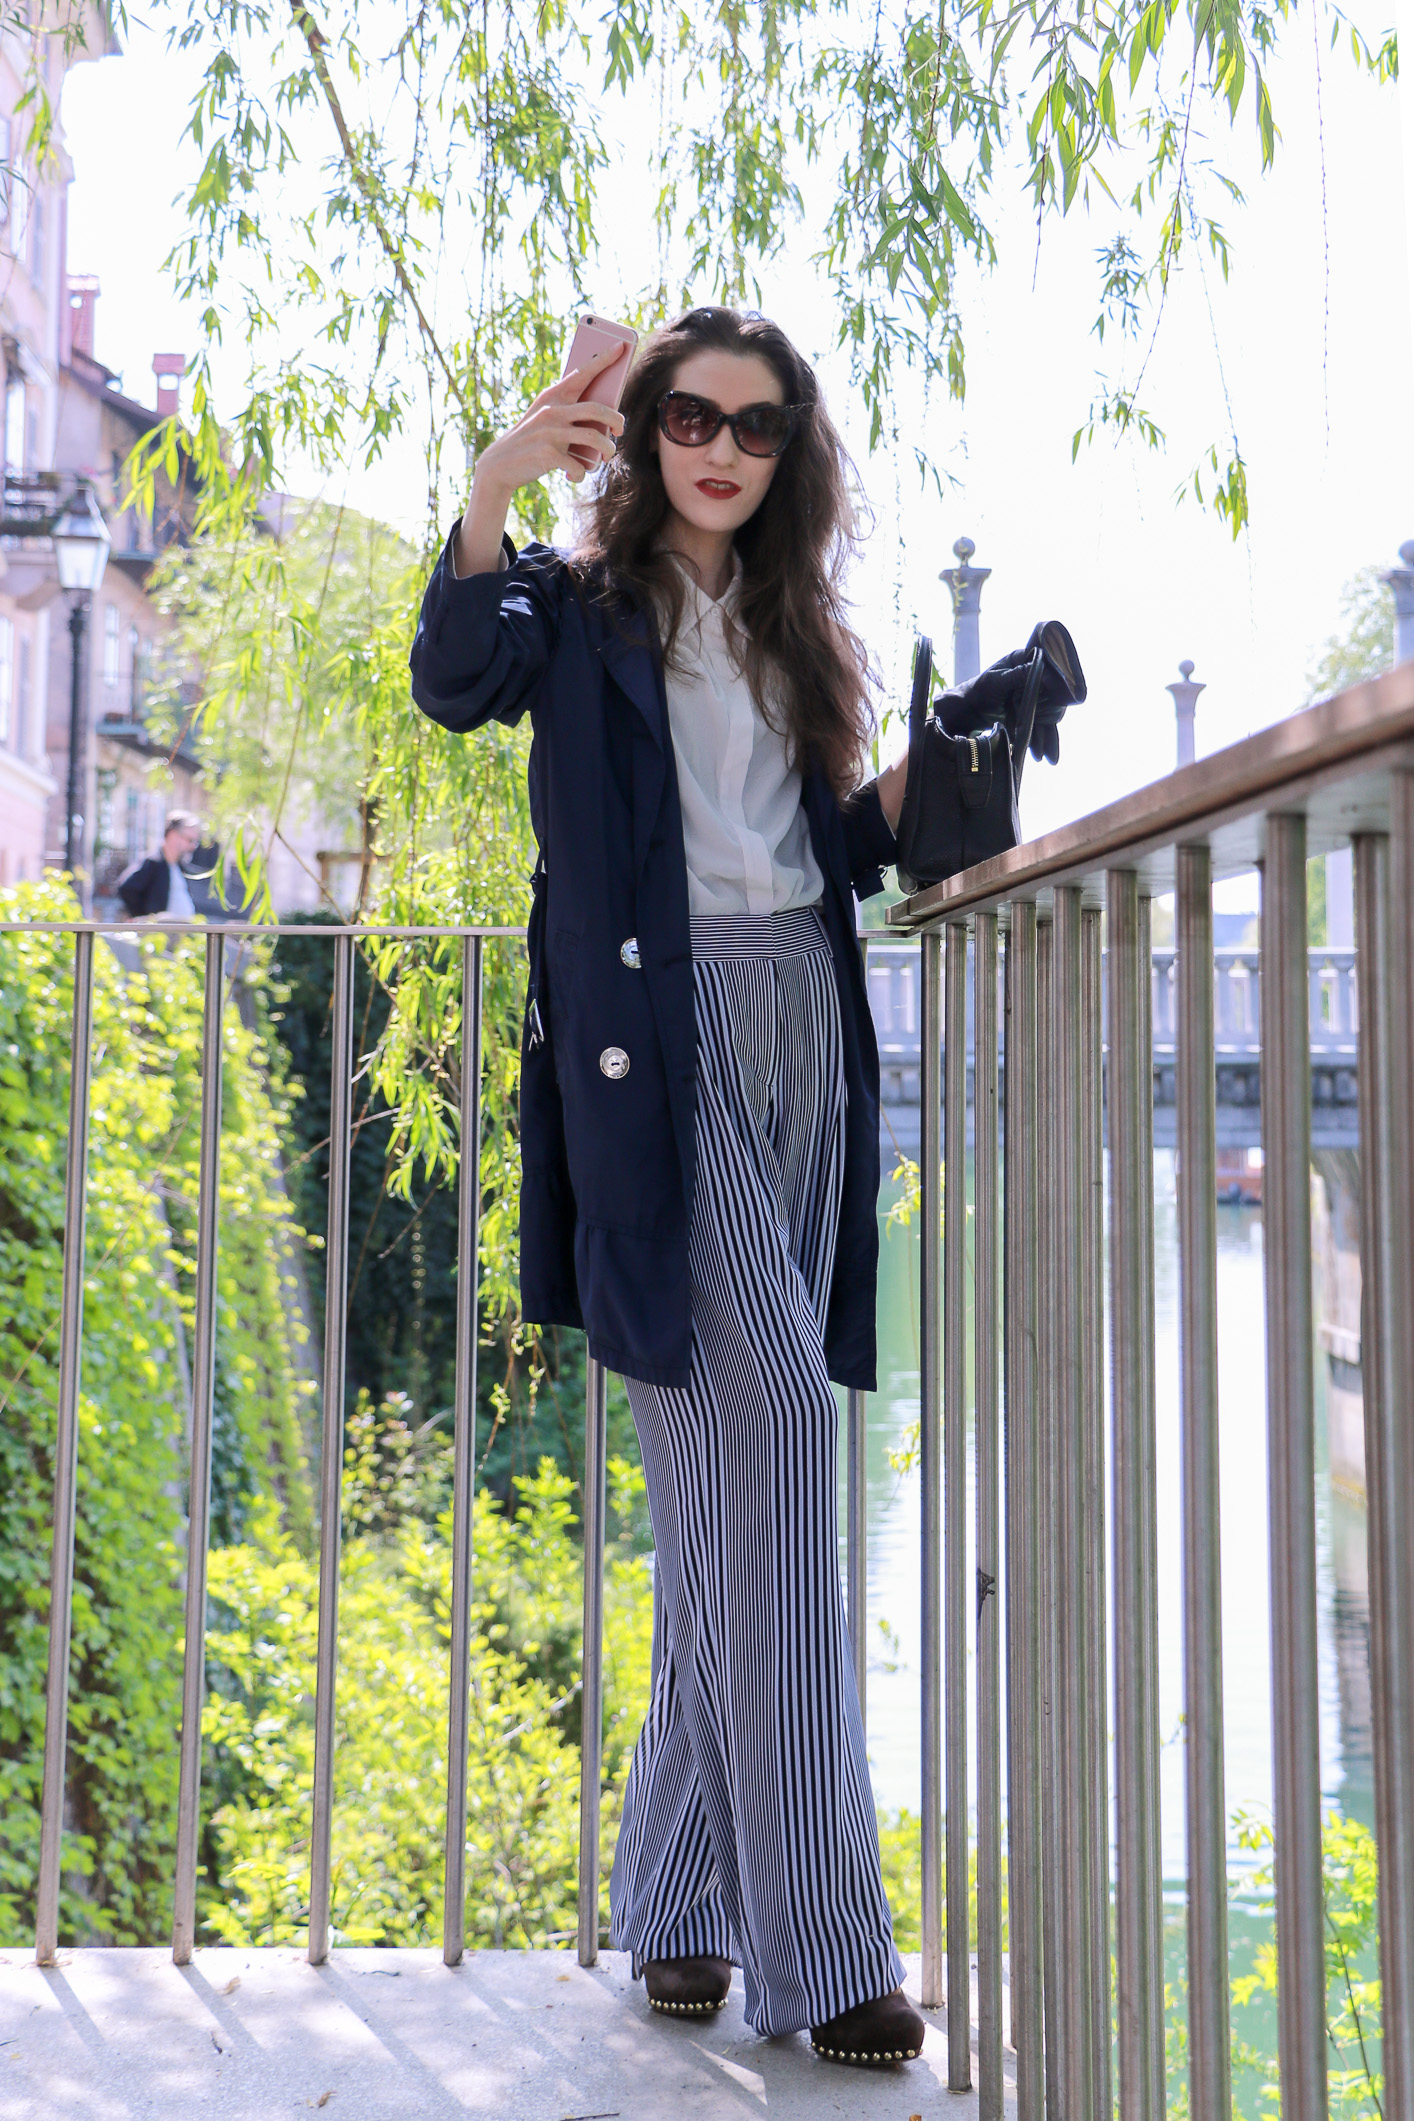 Fashion blogger Veronika Lipar of Brunette From Wall Street sharing how to wear wide-leg striped pants for a chic look this spring